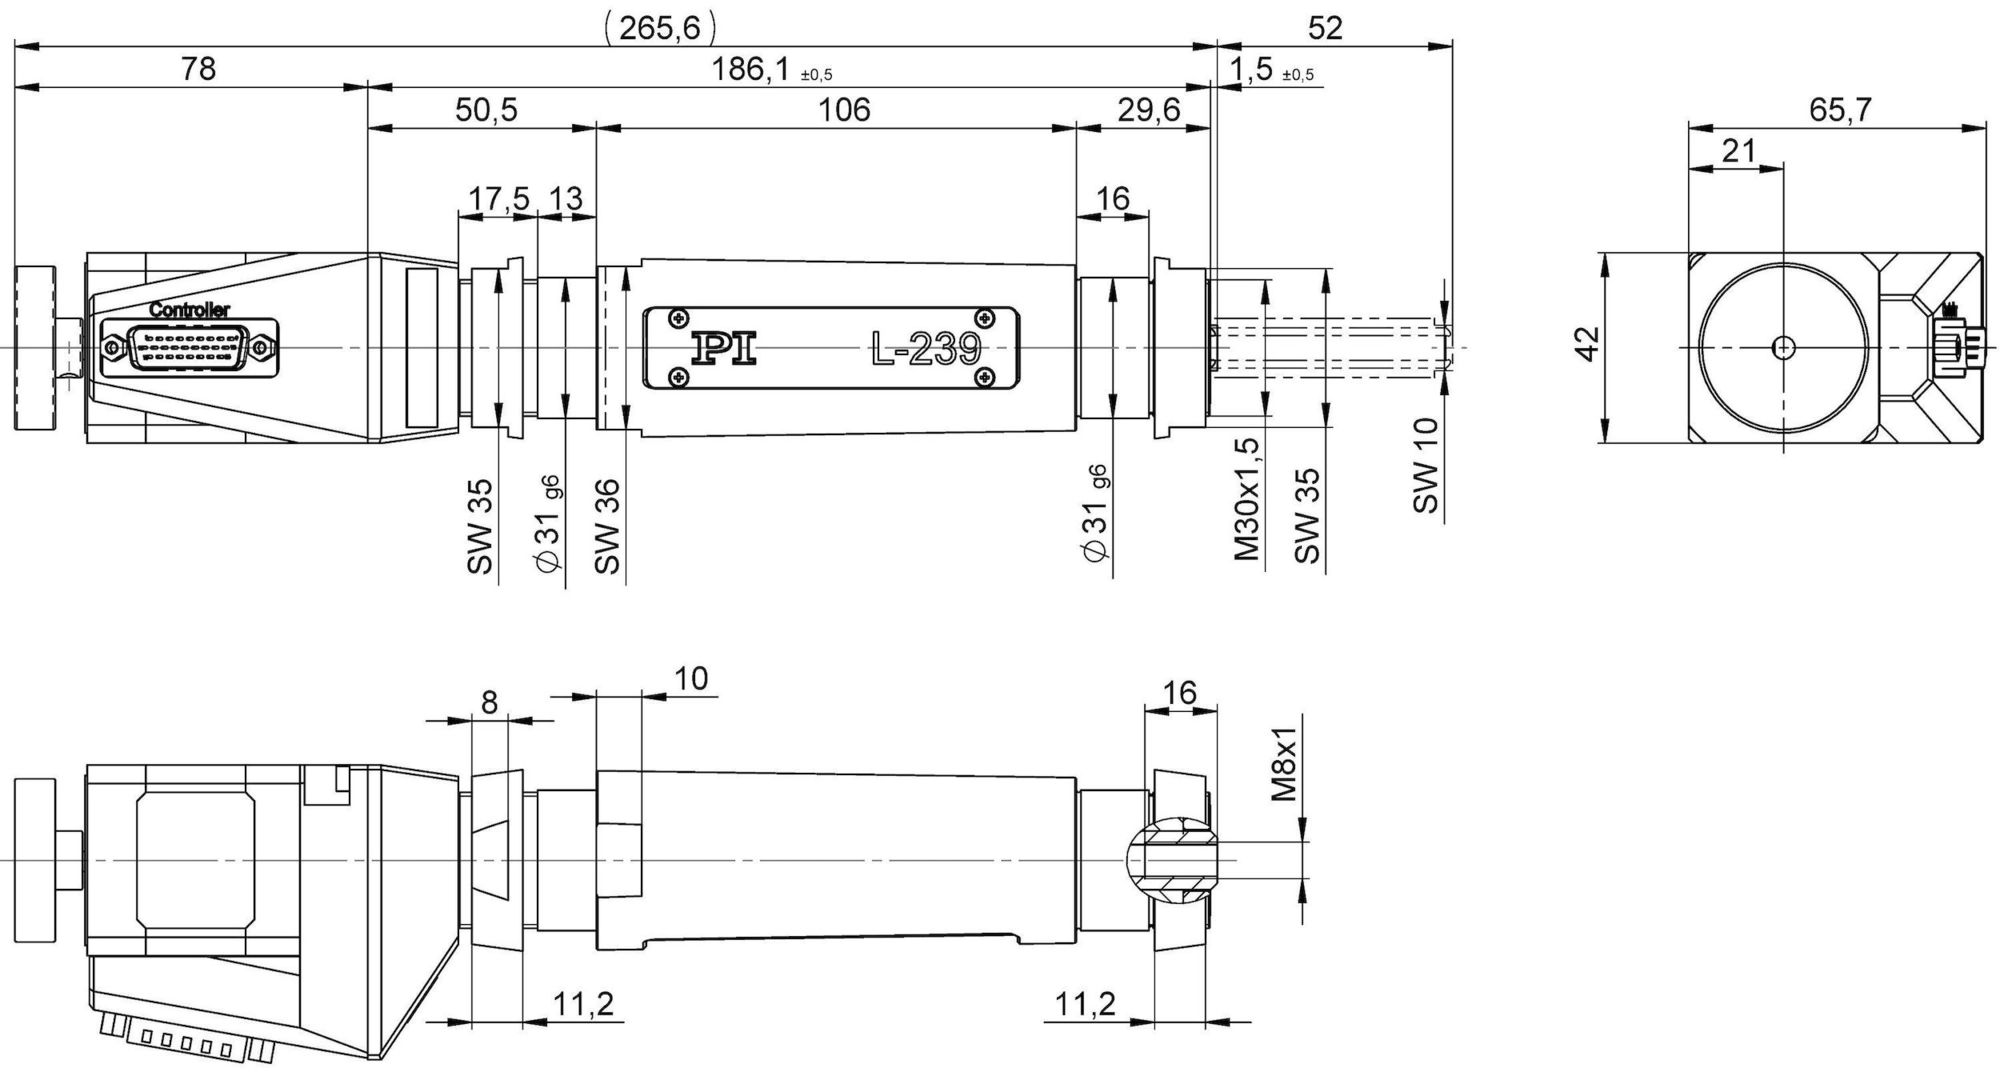 L 239 High Load Linear Actuator Servo Control Loop Diagram Moreover Stepper Motor Circuit 23950sd With Dimensions In Mm